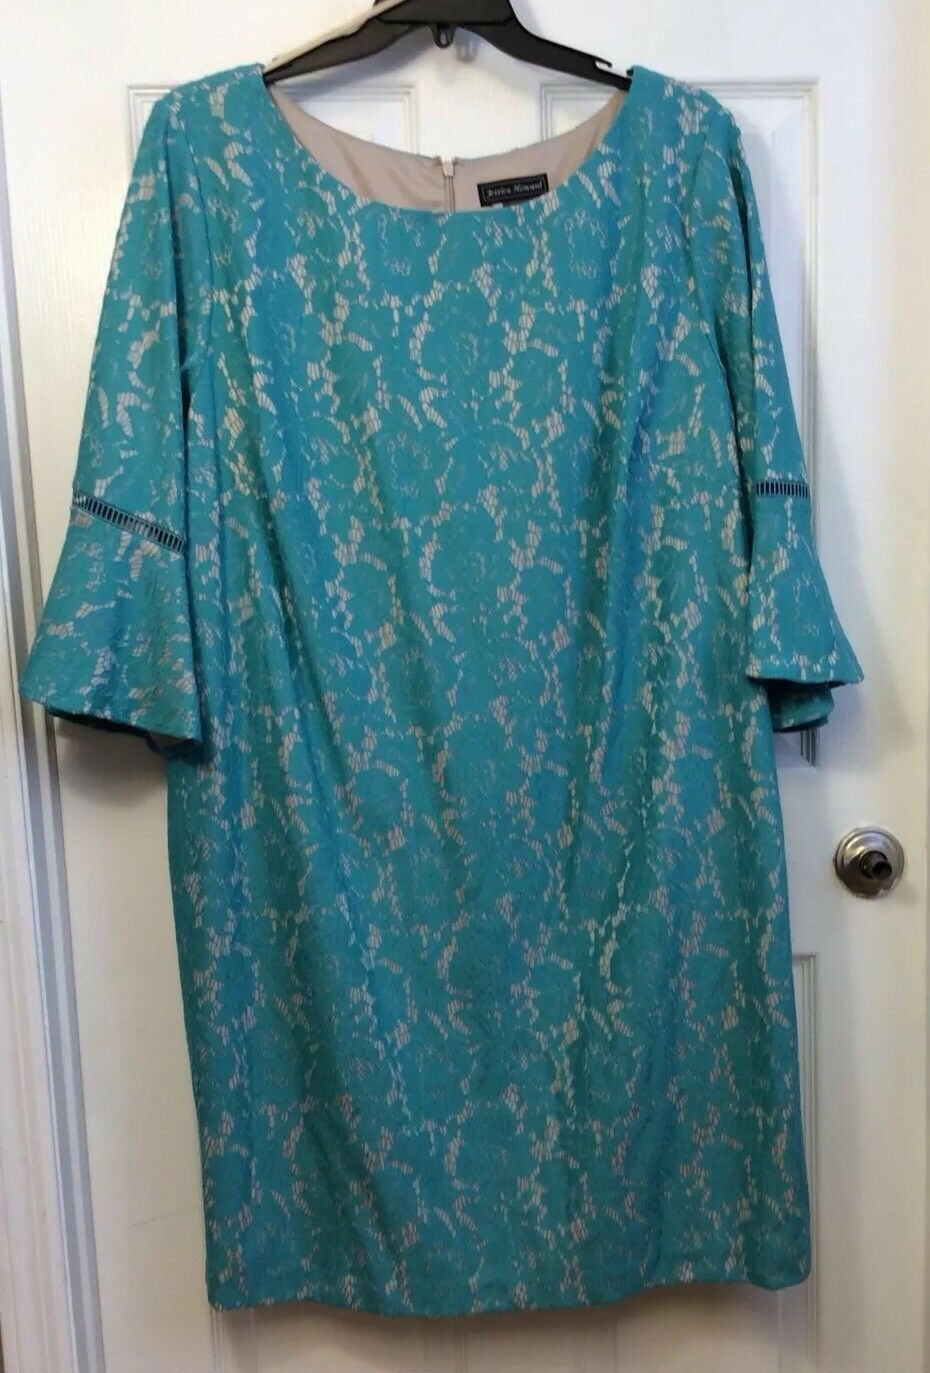 Jessica Howard Woman's Plus Size 24W Lace turquoise dress Bell Sleeves   NWT